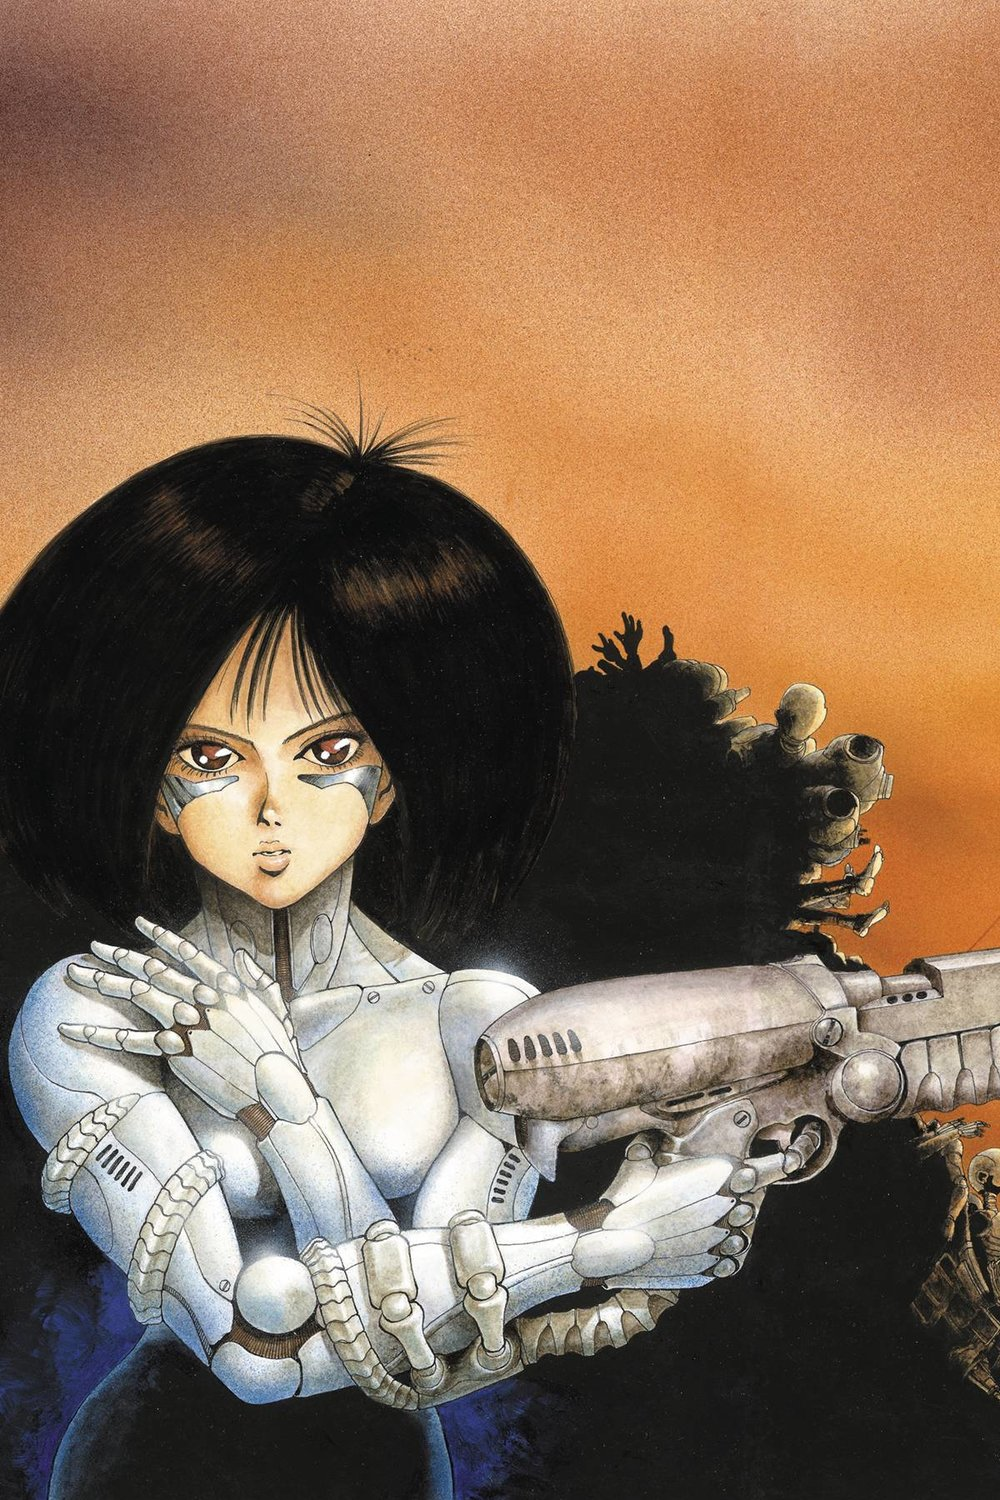 battle angel1.jpg